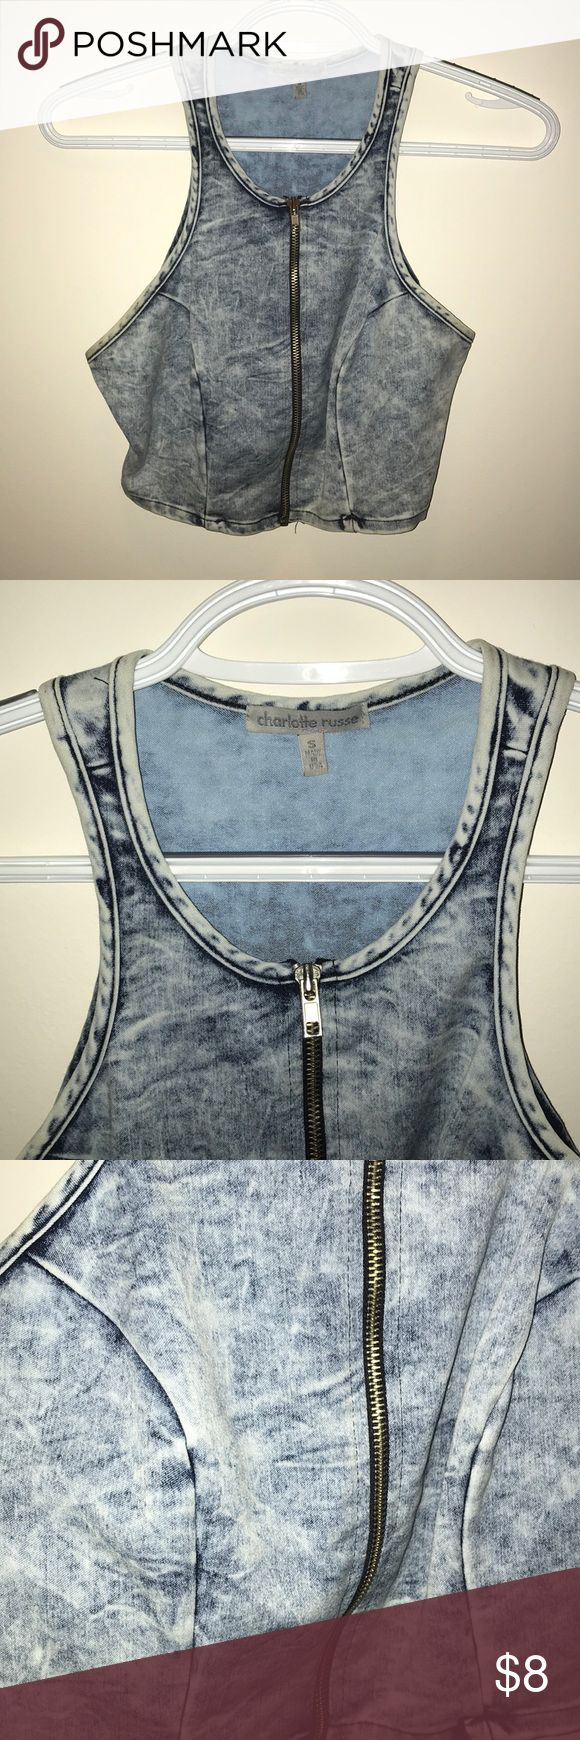 Denim Zip Up Halter Crop Top Worn twice, denim halter zip up crop top from Charlotte Russe hugs the body in a flattering way, and has just enough length to show a good amount of stomach Charlotte Russe Tops Crop Tops